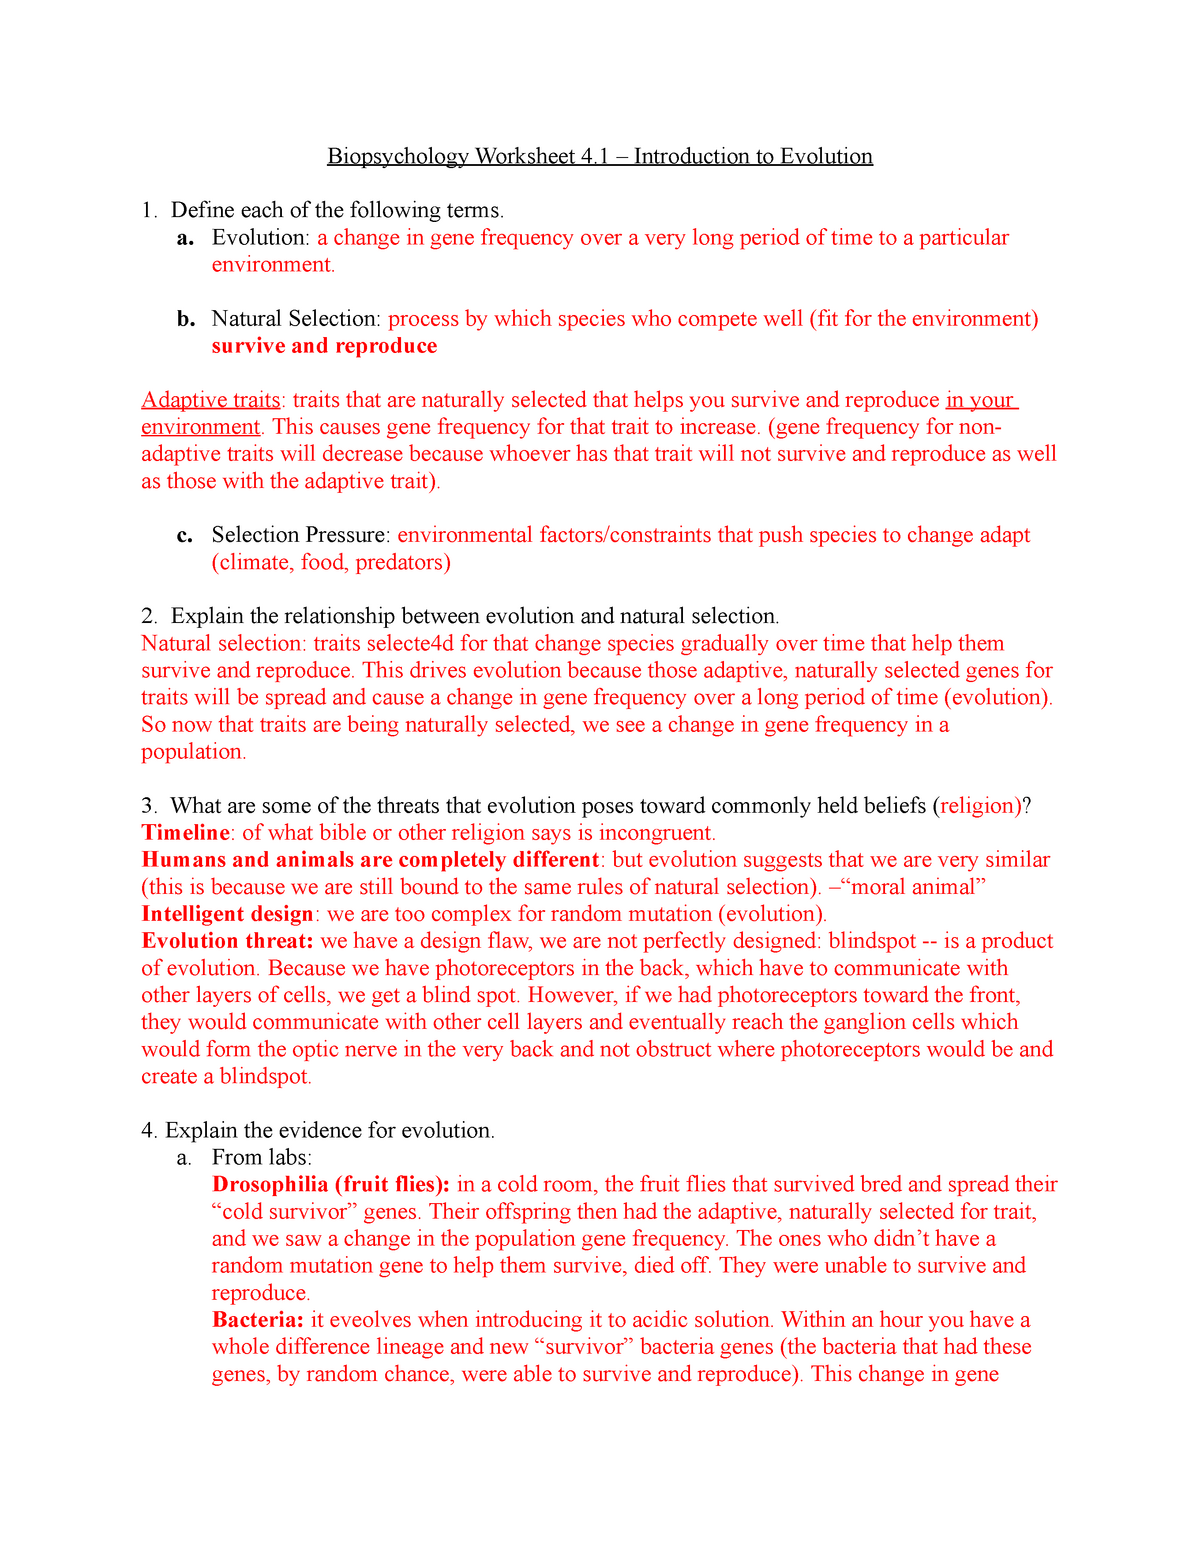 Quiz   Worksheet   Charles Darwin   Natural Selection   Study   FREE additionally Citing Textual Evidence Worksheet Grade Text Worksheets Based together with Evolution   Natural Selection Worksheet by Ening Einsteins   TpT additionally BIO 148 Osterhage Evolutionary Mechanisms Workshee      Chegg likewise Evolution together with Natural Selection Worksheet Download   Free Educations Kids further  as well Natural Selection Worksheet Answer Key   Locationbasedsummit as well Evolution by Natural Selection worksheet and lab activity docx in addition  additionally  likewise Natural Selection Worksheet Answer Key Evolution Natural Selection additionally Student Exploration Natural Selection Worksheet Answers   Fill moreover evolution by natural selection worksheet key darwins natural also Natural Selection Worksheet For Education   Free Educations Kids as well . on evolution by natural selection worksheet